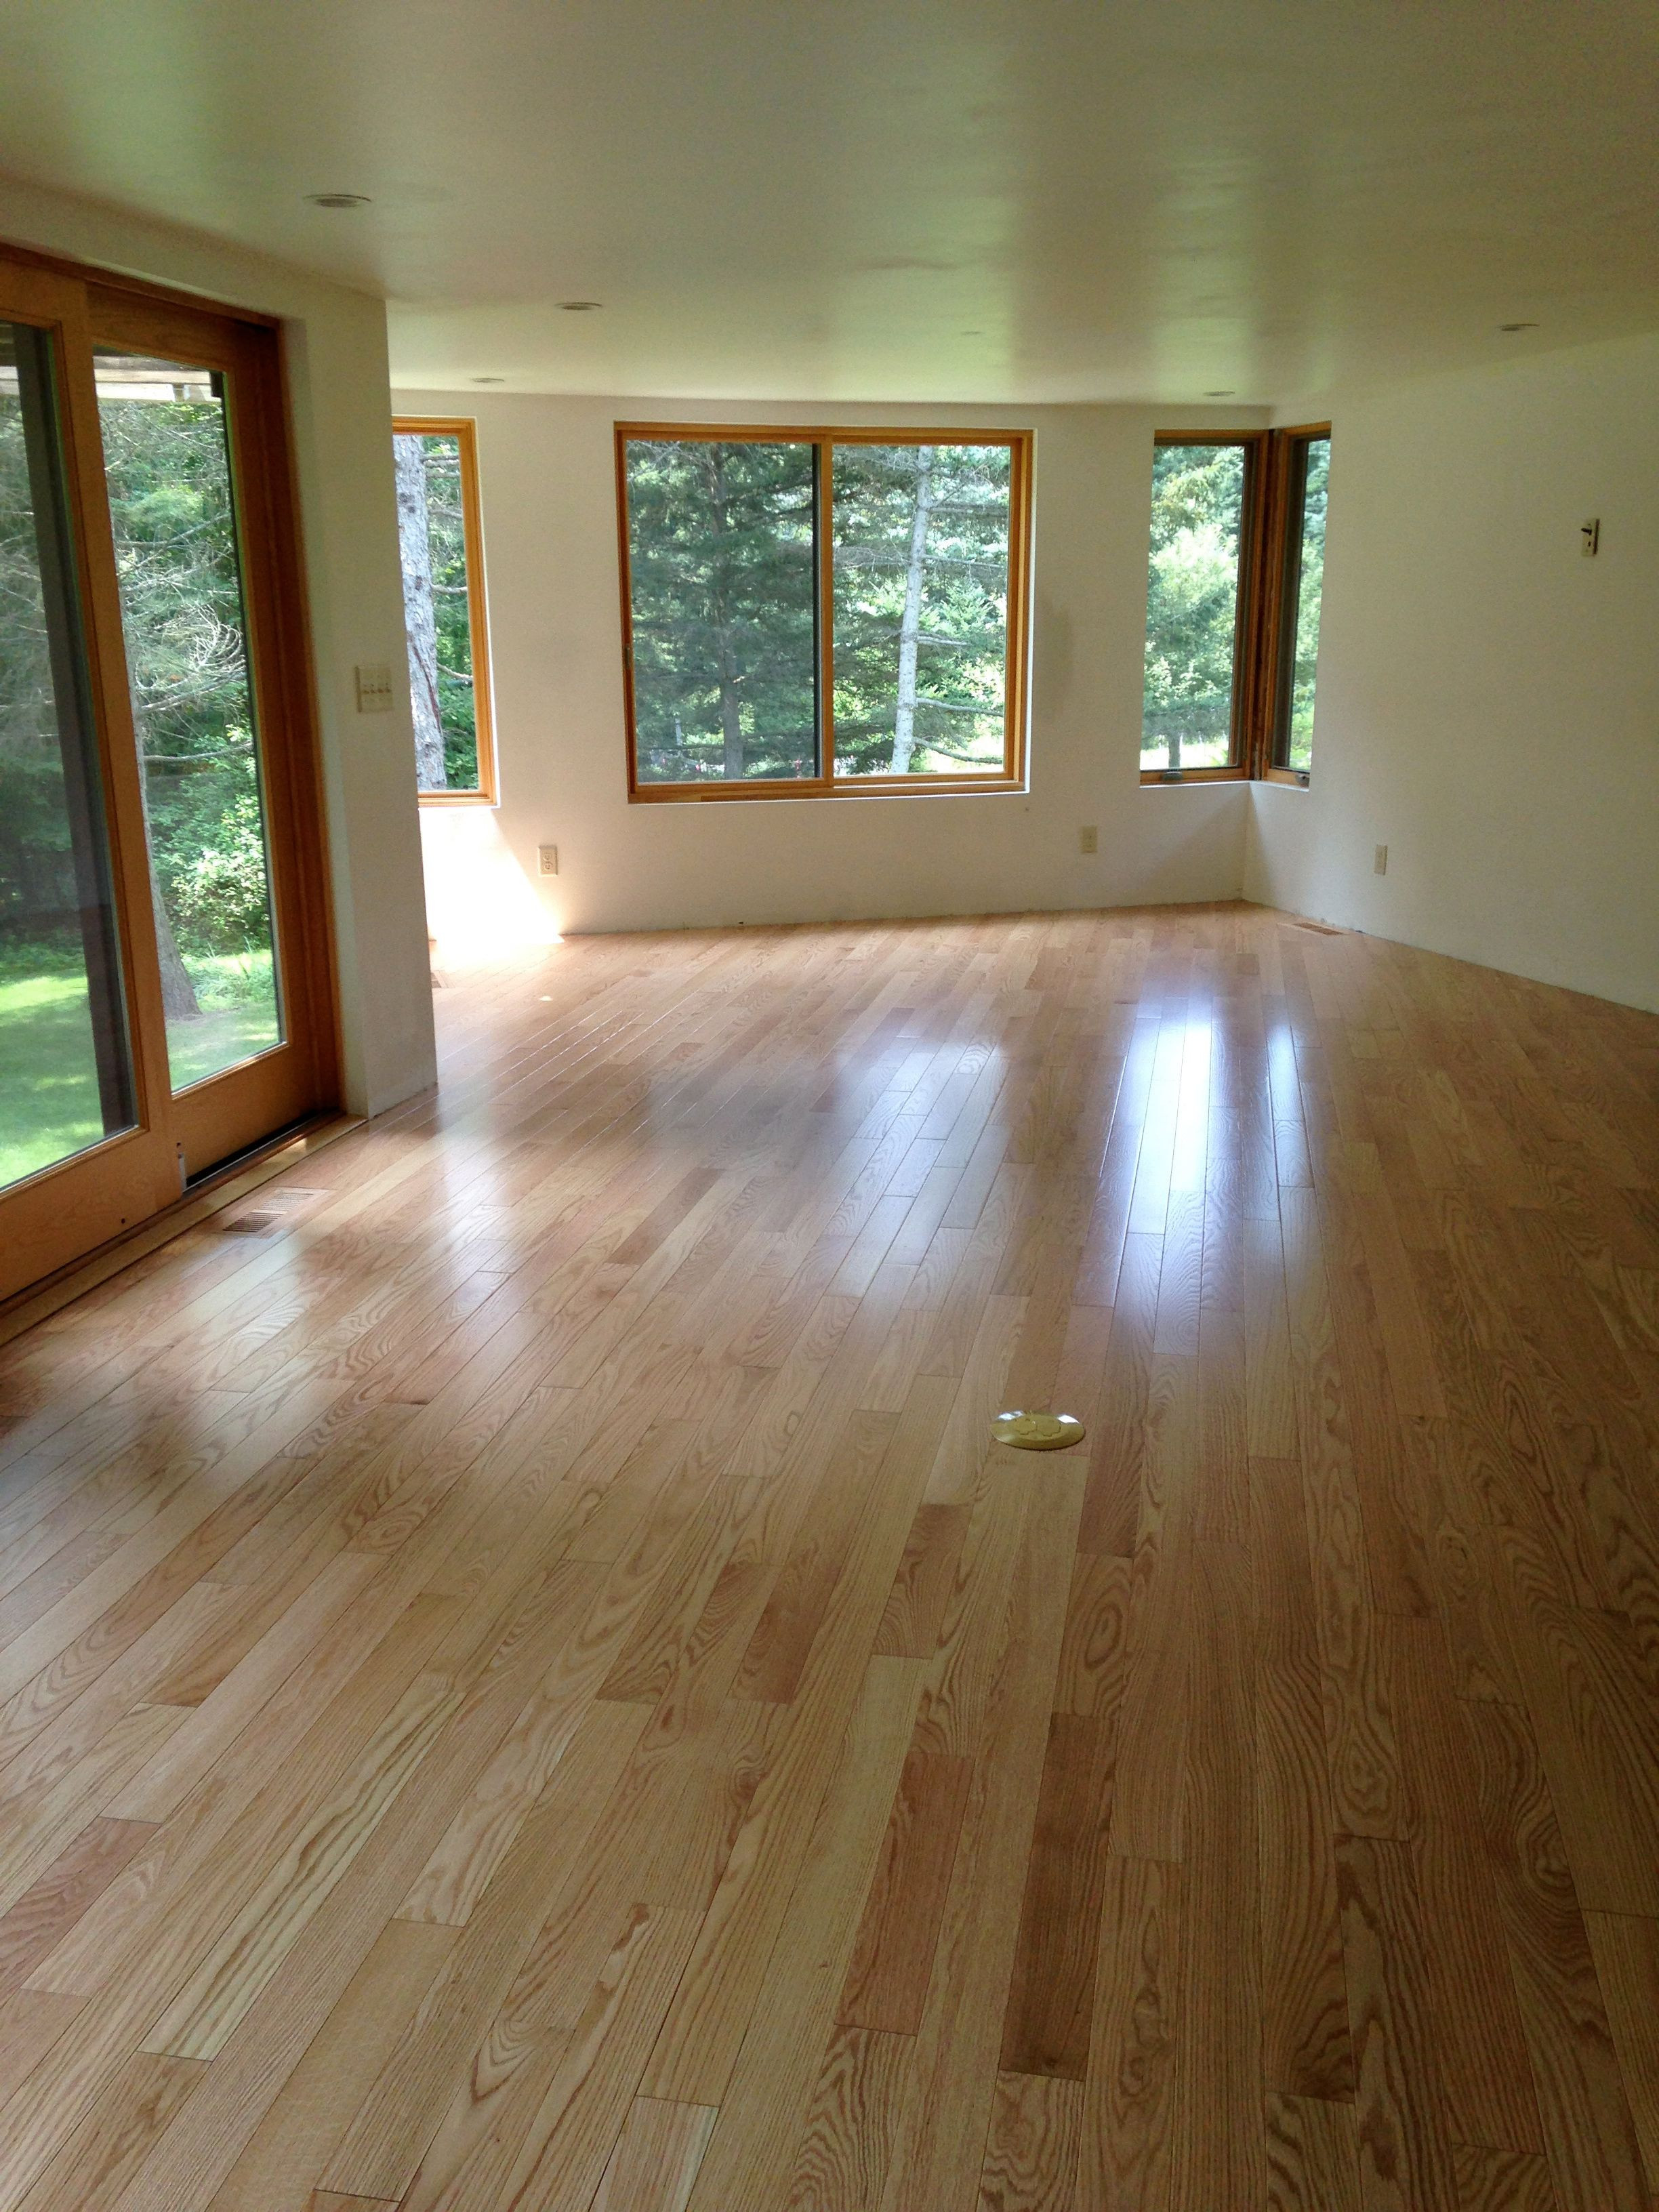 how to refinish hardwood floors yourself without sanding of sanding hardwood floors great methods to use for refinishing regarding hardwood floor refinishing is an affordable way to spruce up your space without a full replacement